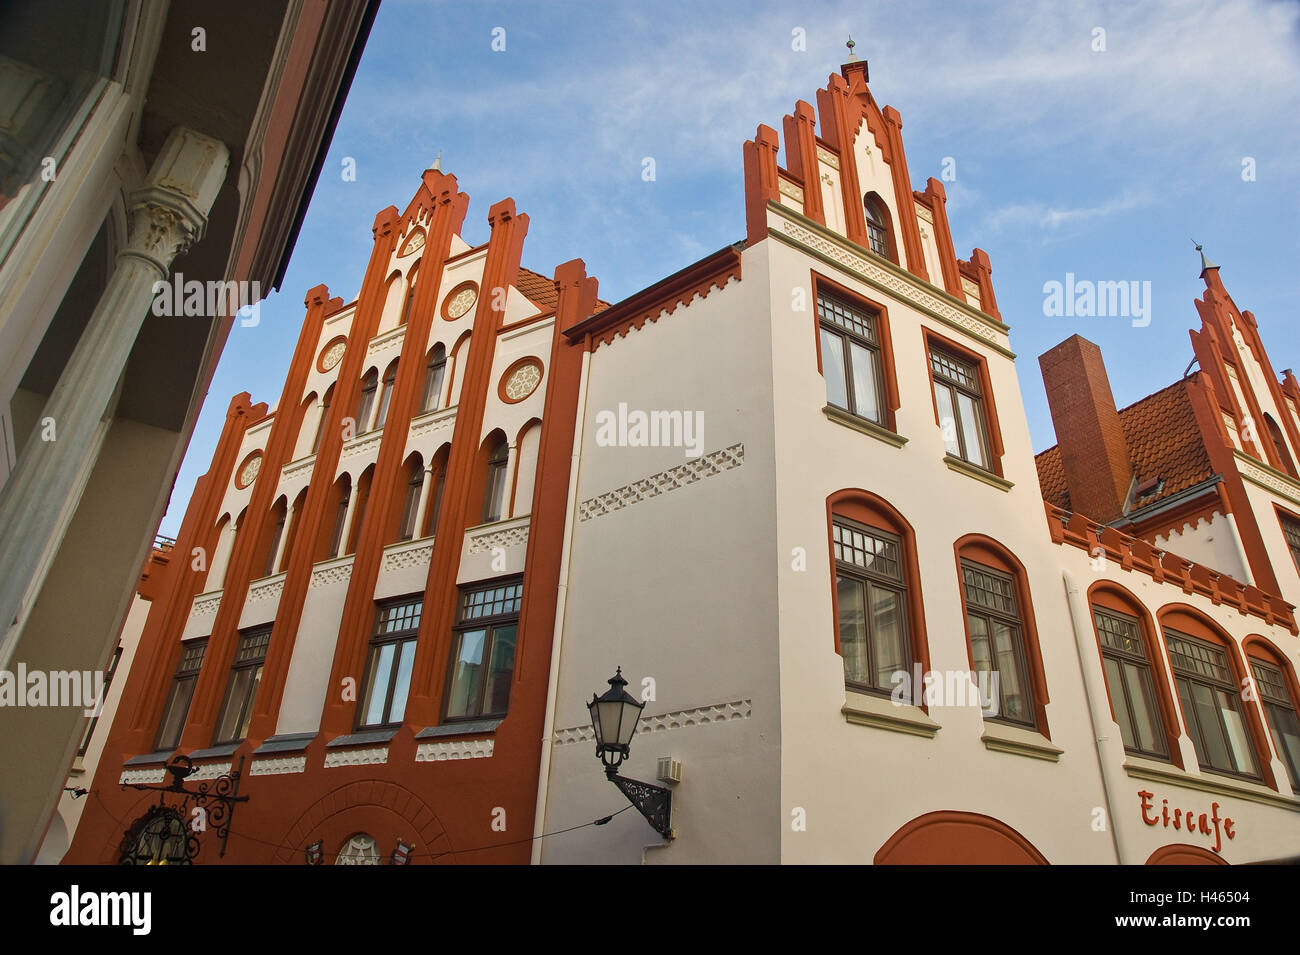 Germany, Mecklenburg-Western Pomerania, Wismar (city), Altstadt, Eiscafe, facade, detail, Stock Photo